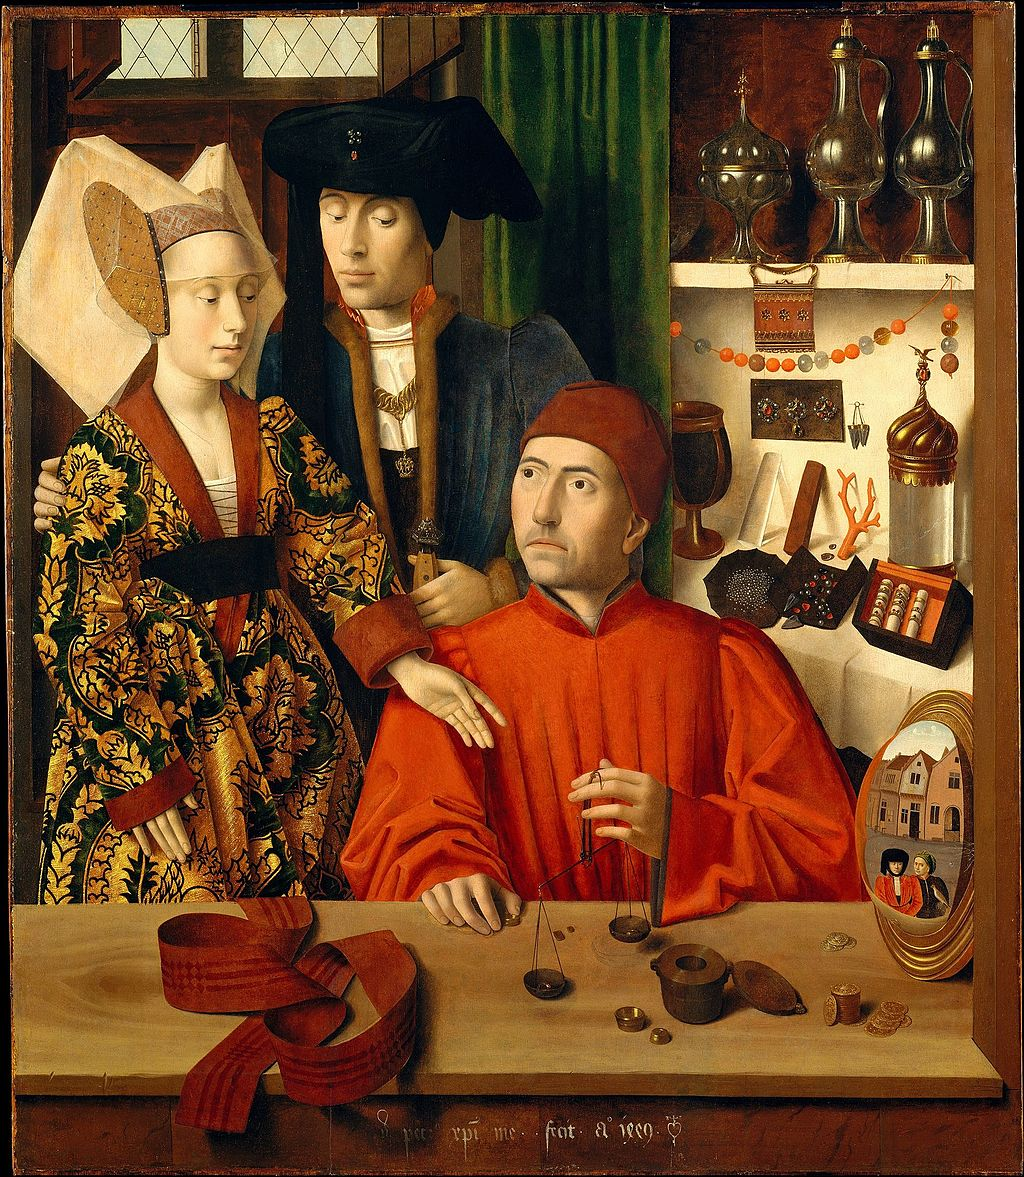 Oil painting in warms hues of goldsmith seated weighing gold with couple standing behind